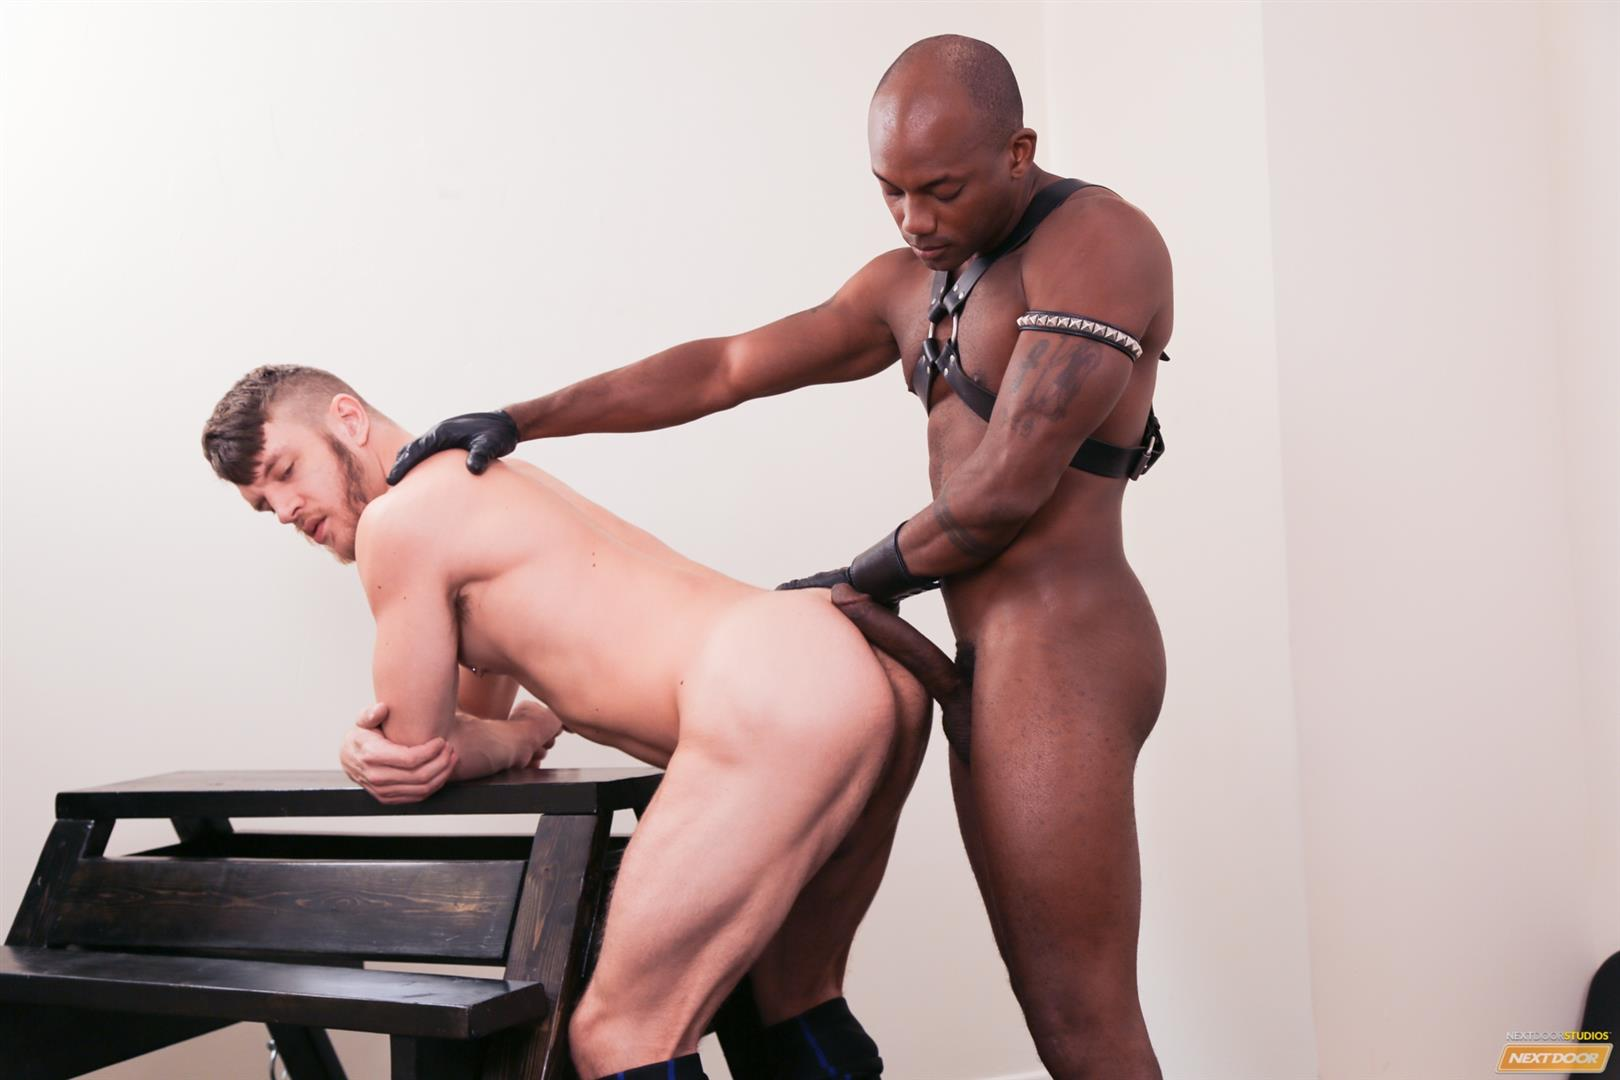 Next-Door-Ebony-Osiris-Blade-and-Caleb-King-Big-Black-Cock-In-White-Ass-Amateur-Gay-Porn-14 Caleb King Gets Dominated By Osiris Blade's Big Black Cock